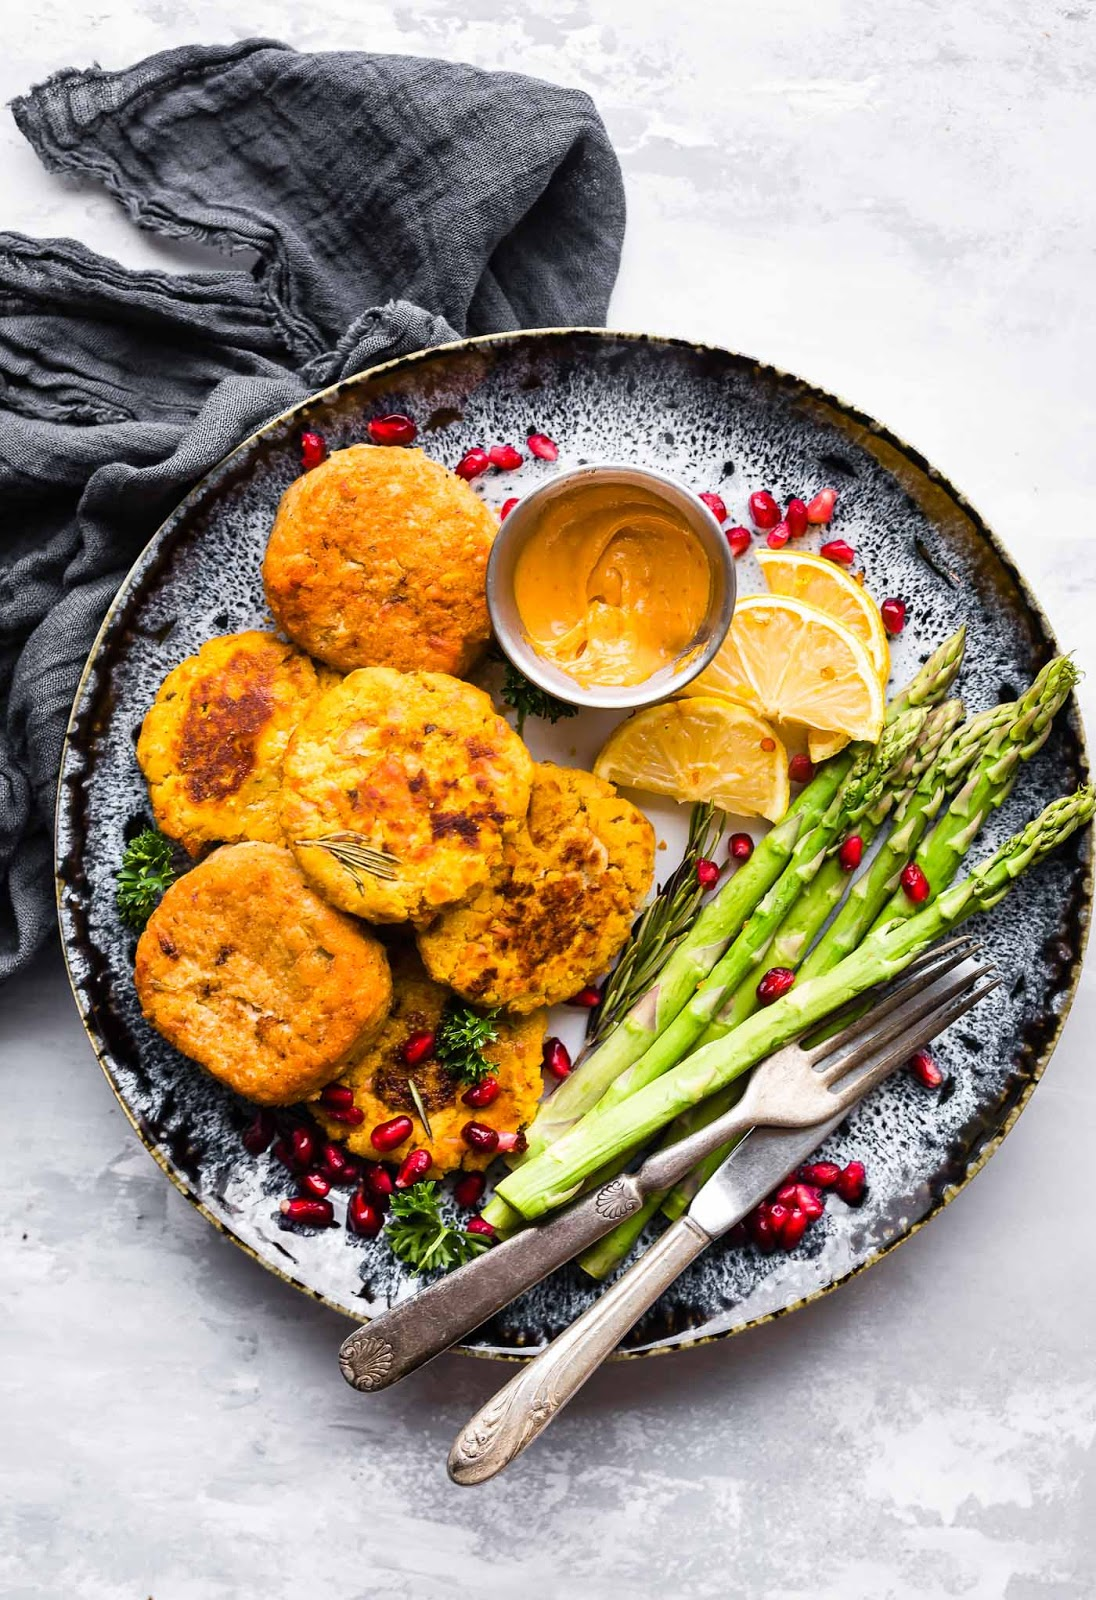 These Salmon cakes are literally veggie packed andprotein packed, not to mention whole30 friendly.No wasting leftovers here, just mix and throw on the skillet. whole 30 friendly #paleo